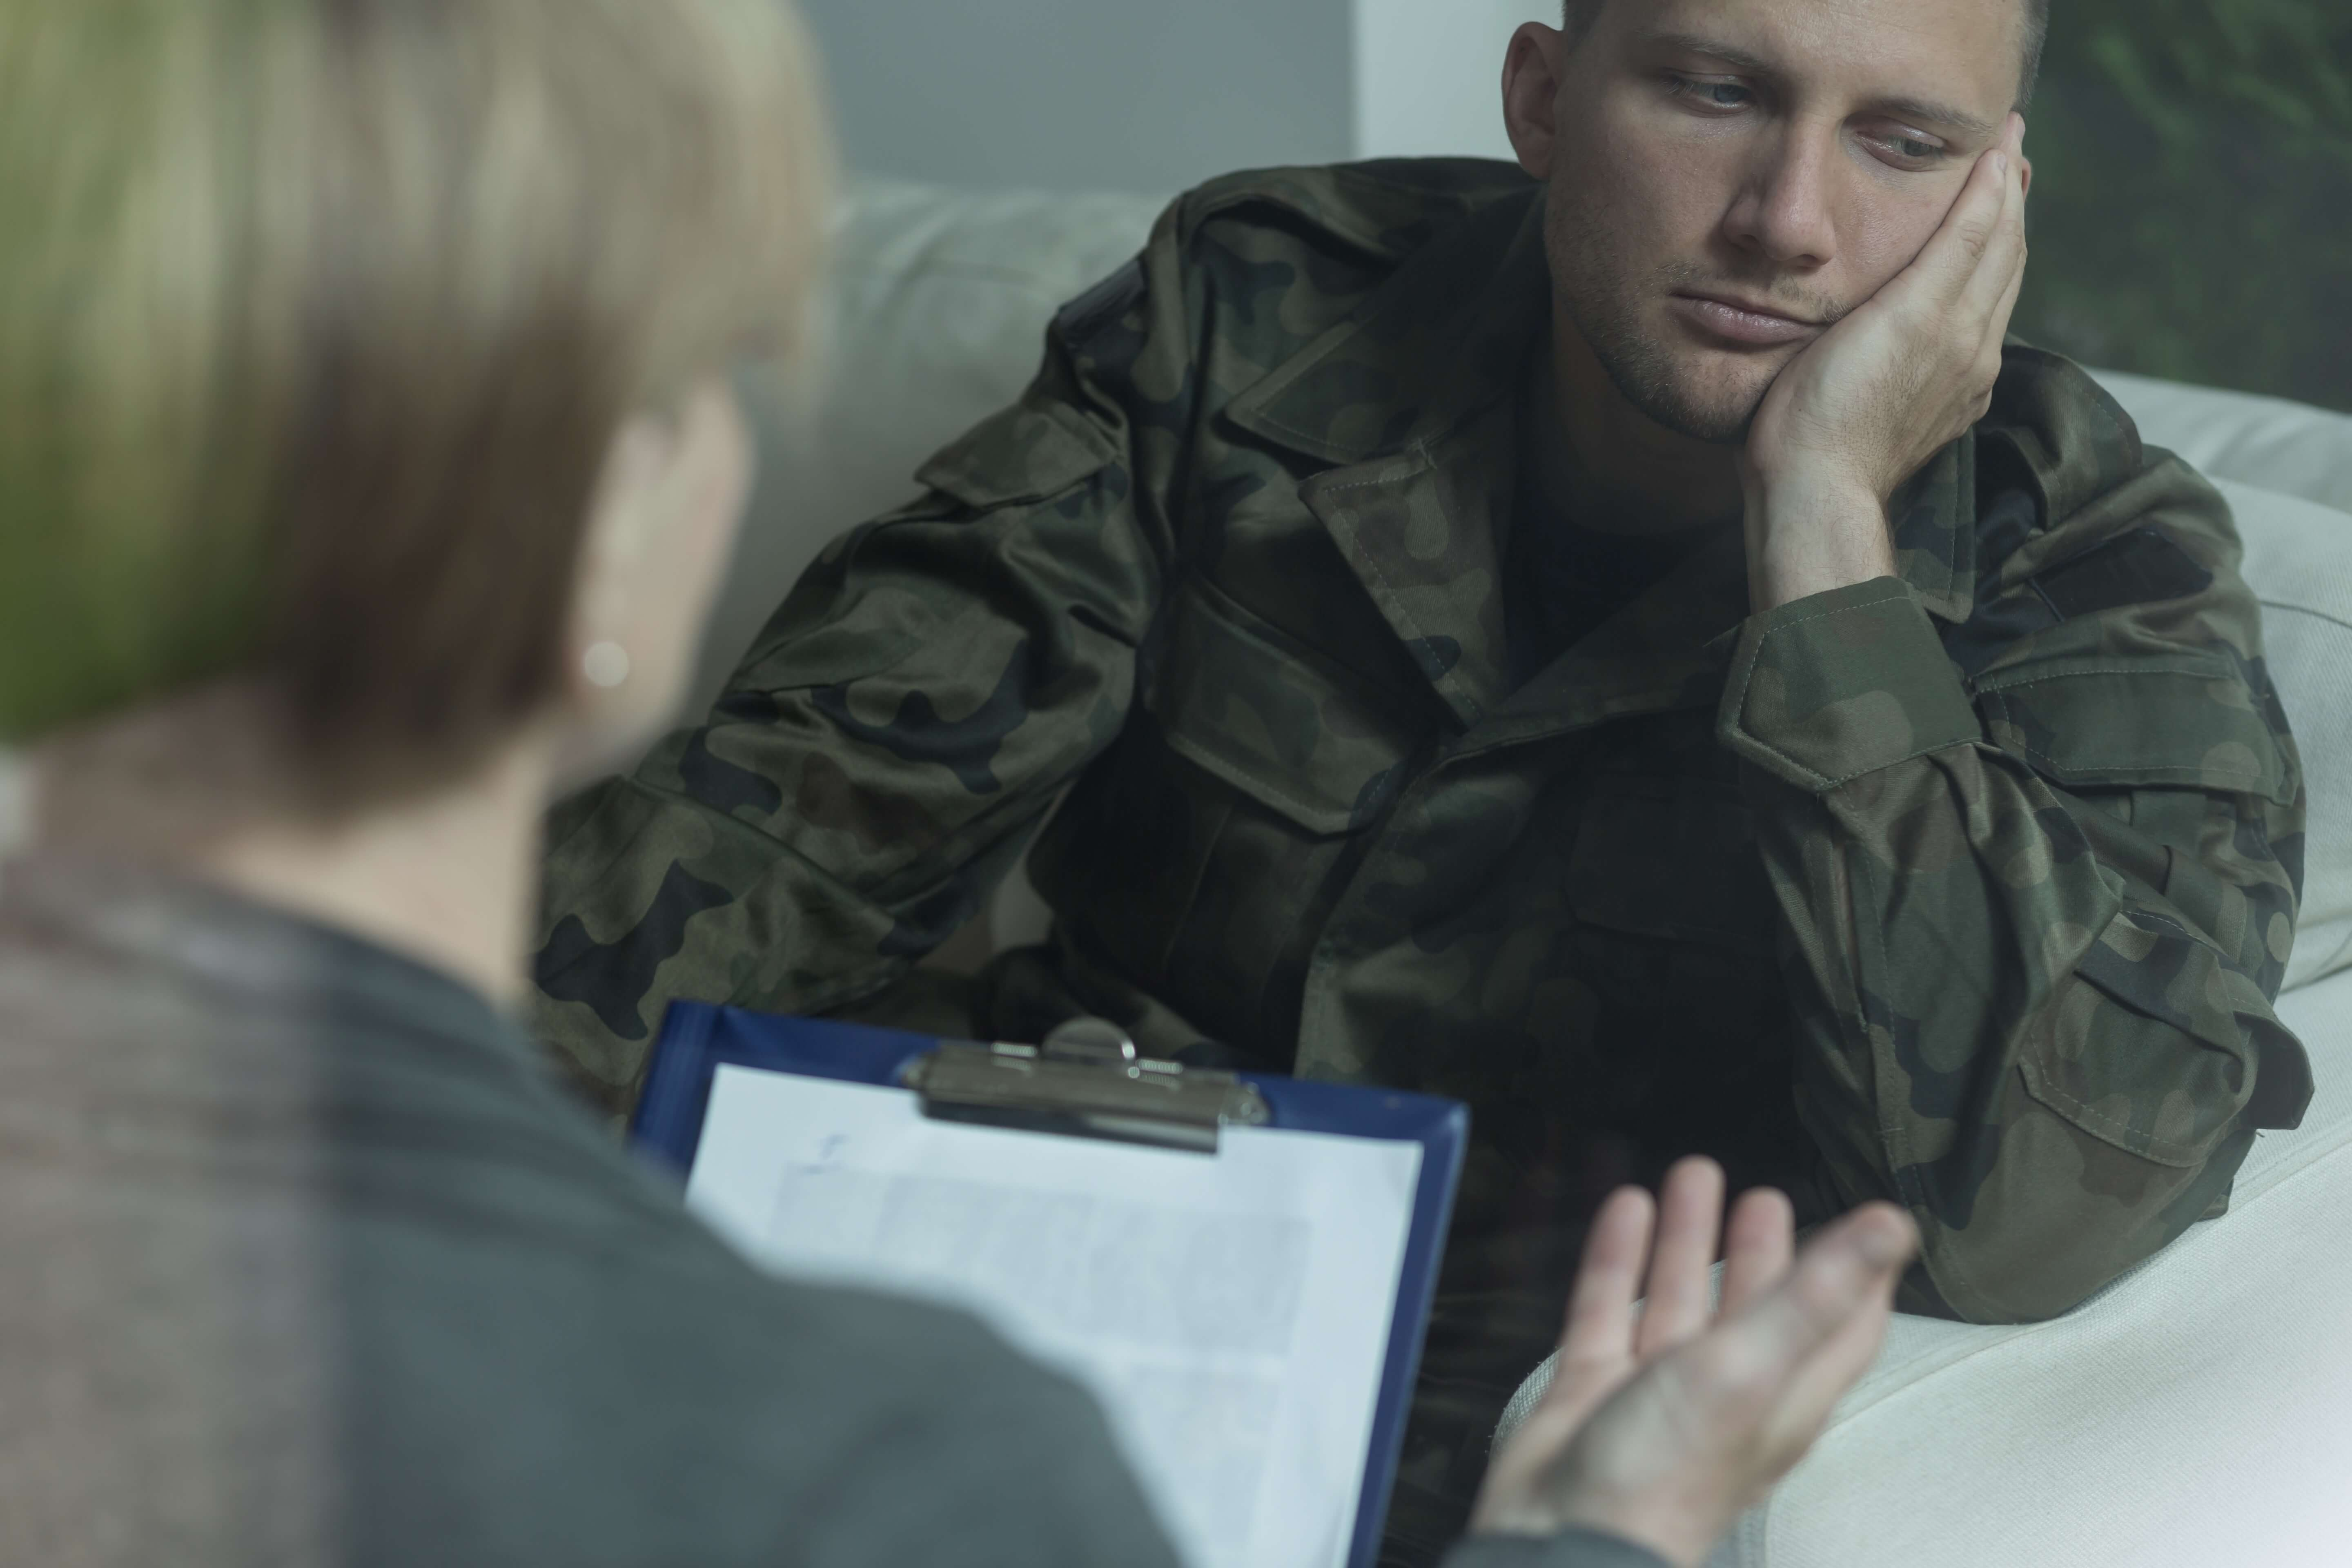 rising-suicide-rates-among-veterans